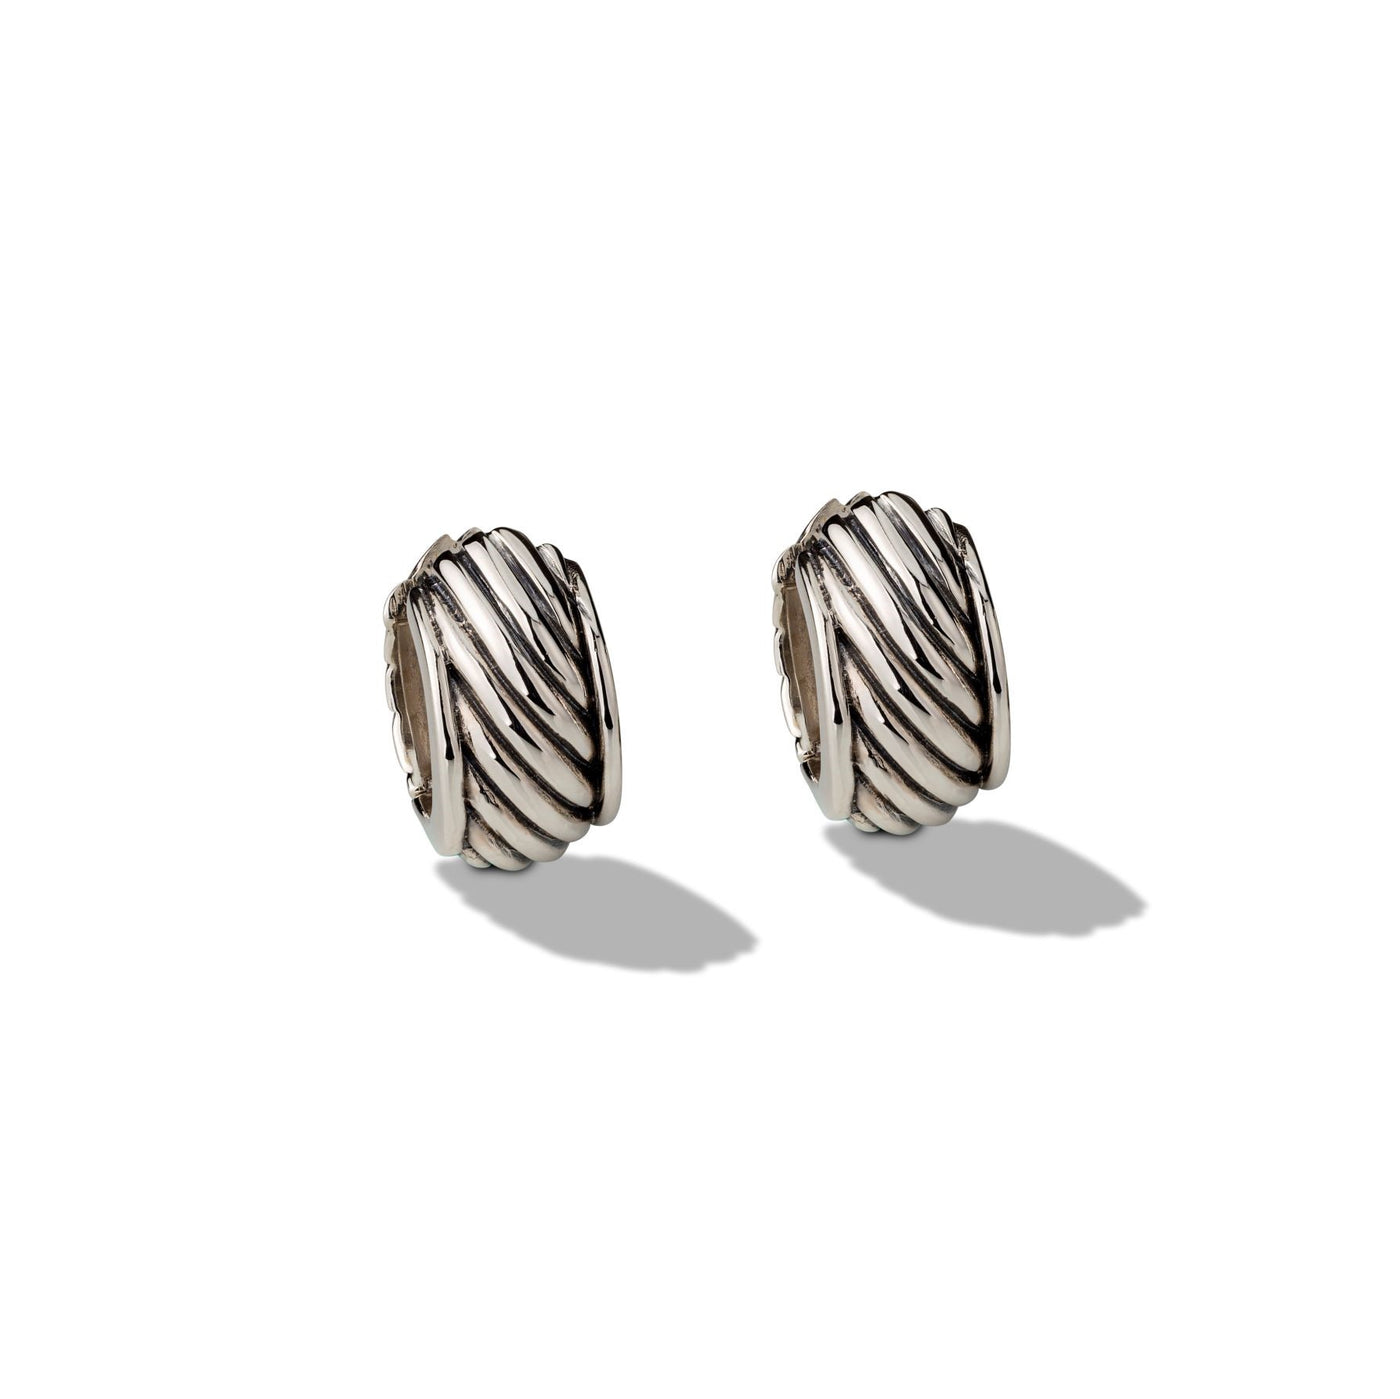 Sterling Silver Textured Huggie Earrings